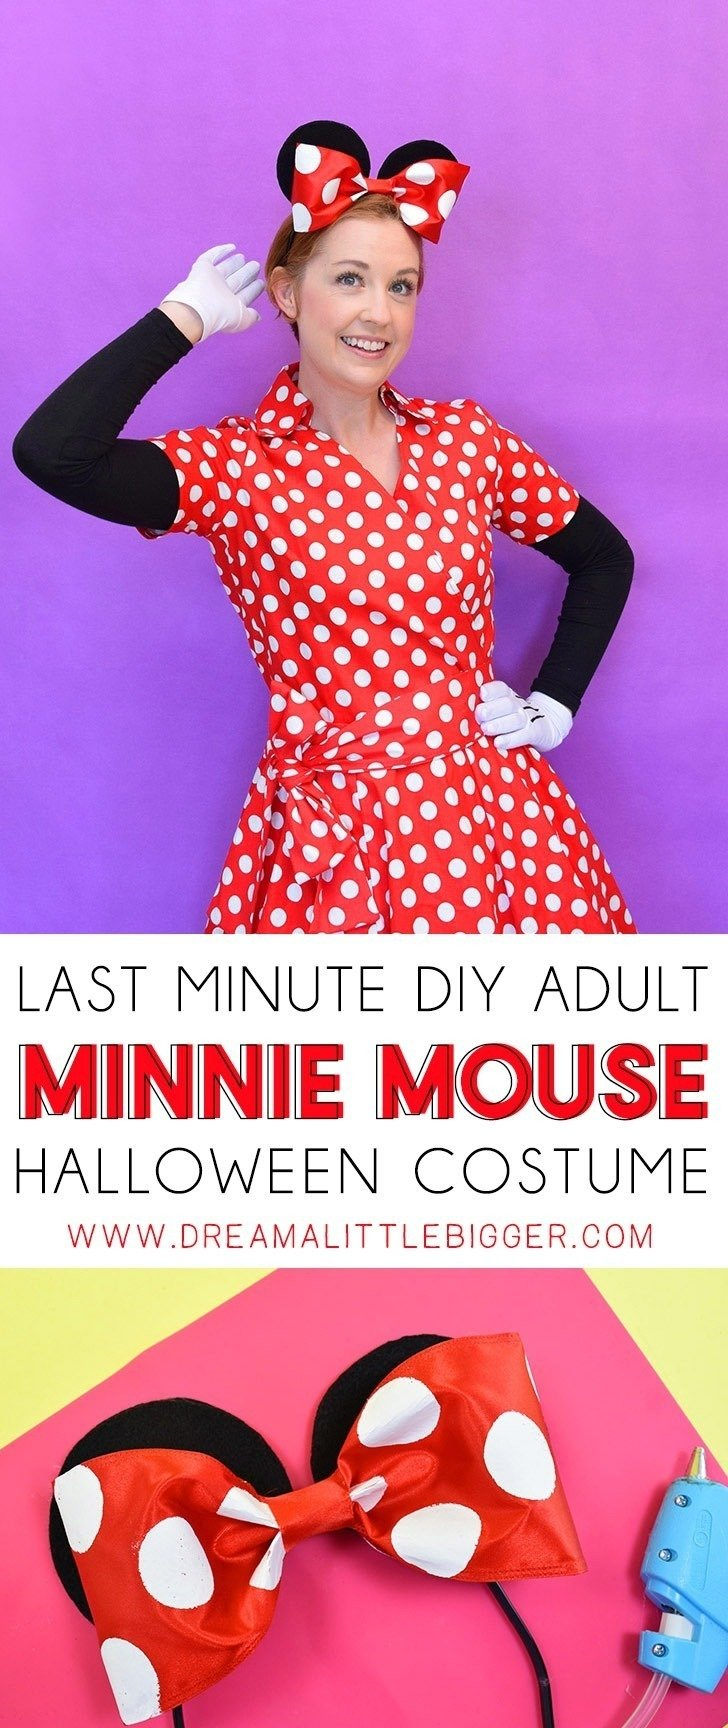 Diy minnie mouse costume for adults dream a little bigger this last minute diy adult minnie mouse costume is the cutest and you can toss most solutioingenieria Choice Image